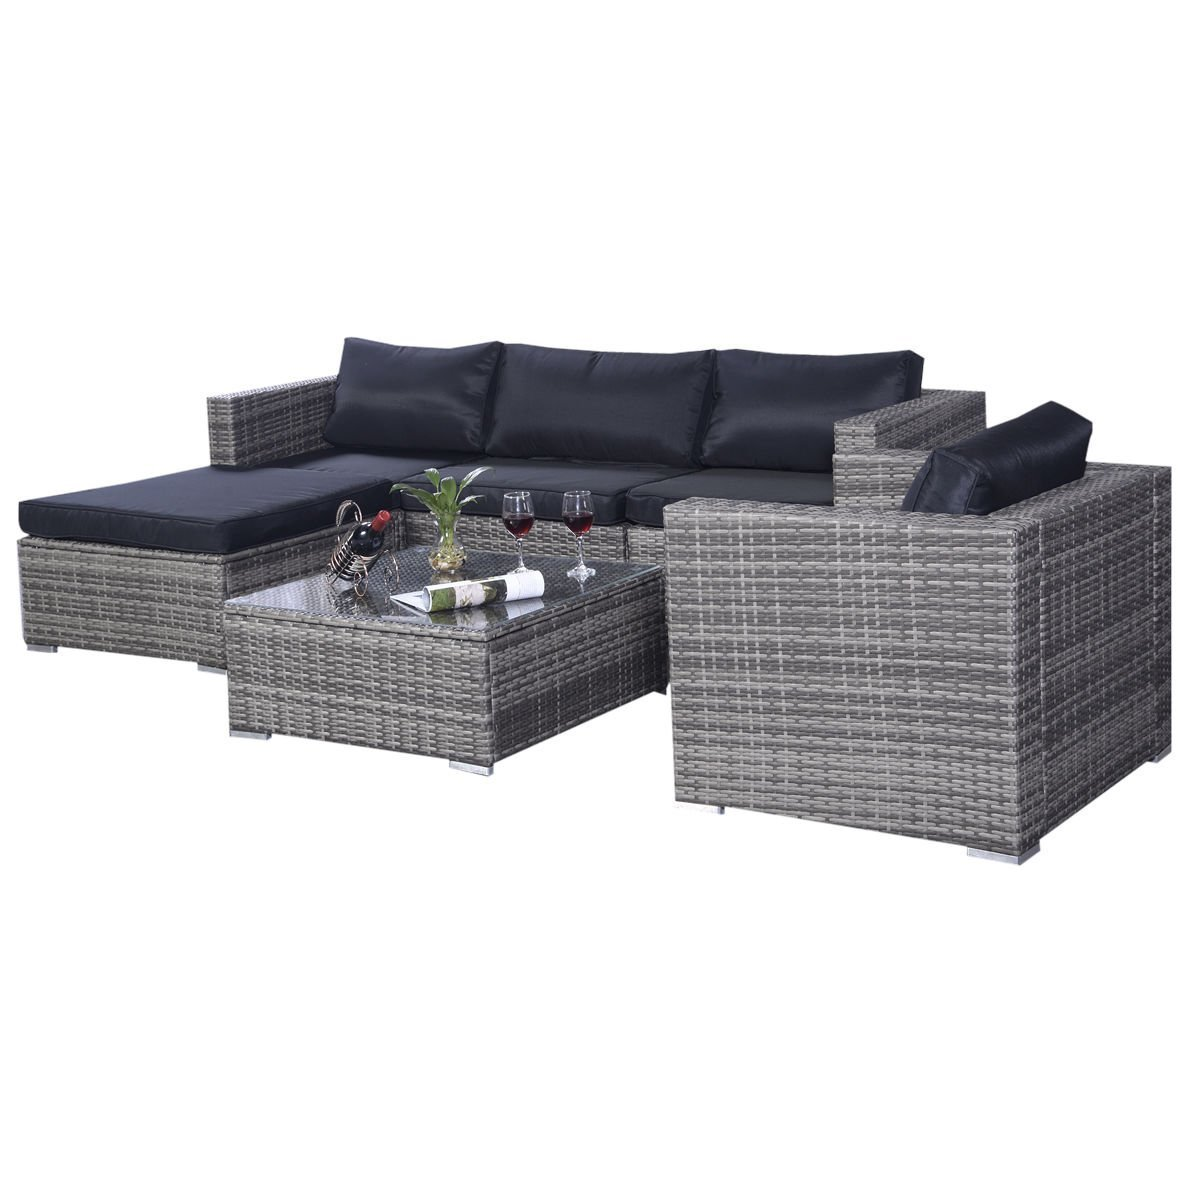 Amazon.com: Tangkula 6 Pcs Outdoor Wicker Furniture Set Sofas ...